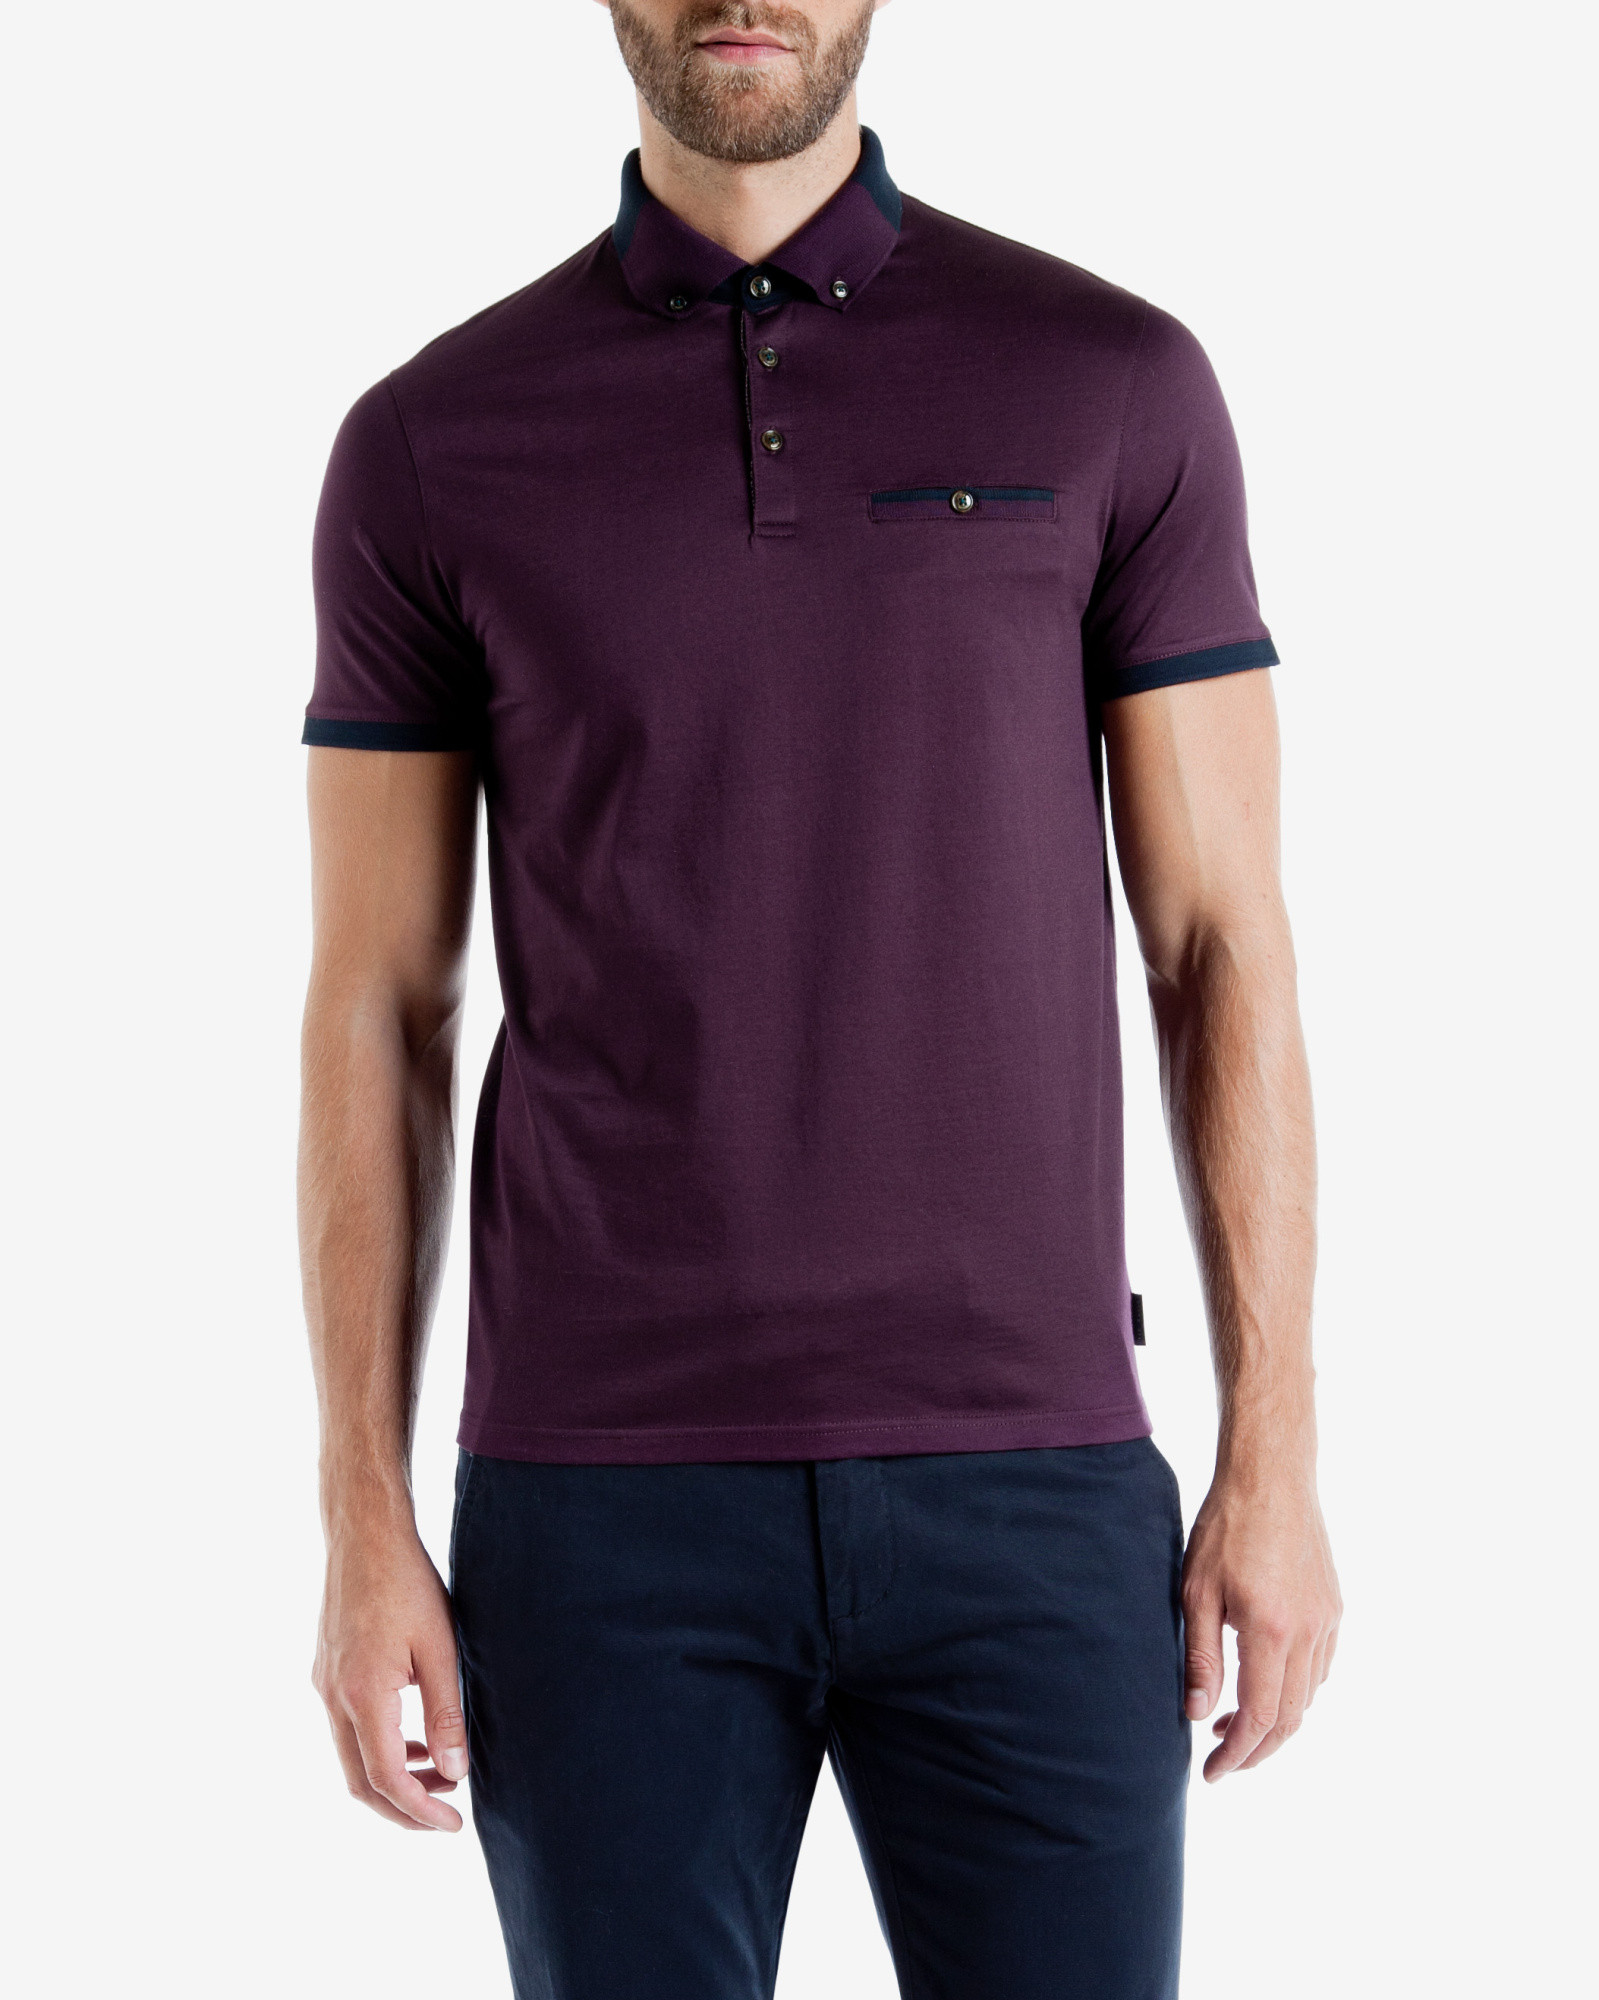 Lyst ted baker color block polo shirt in purple for men for Polo color block shirt